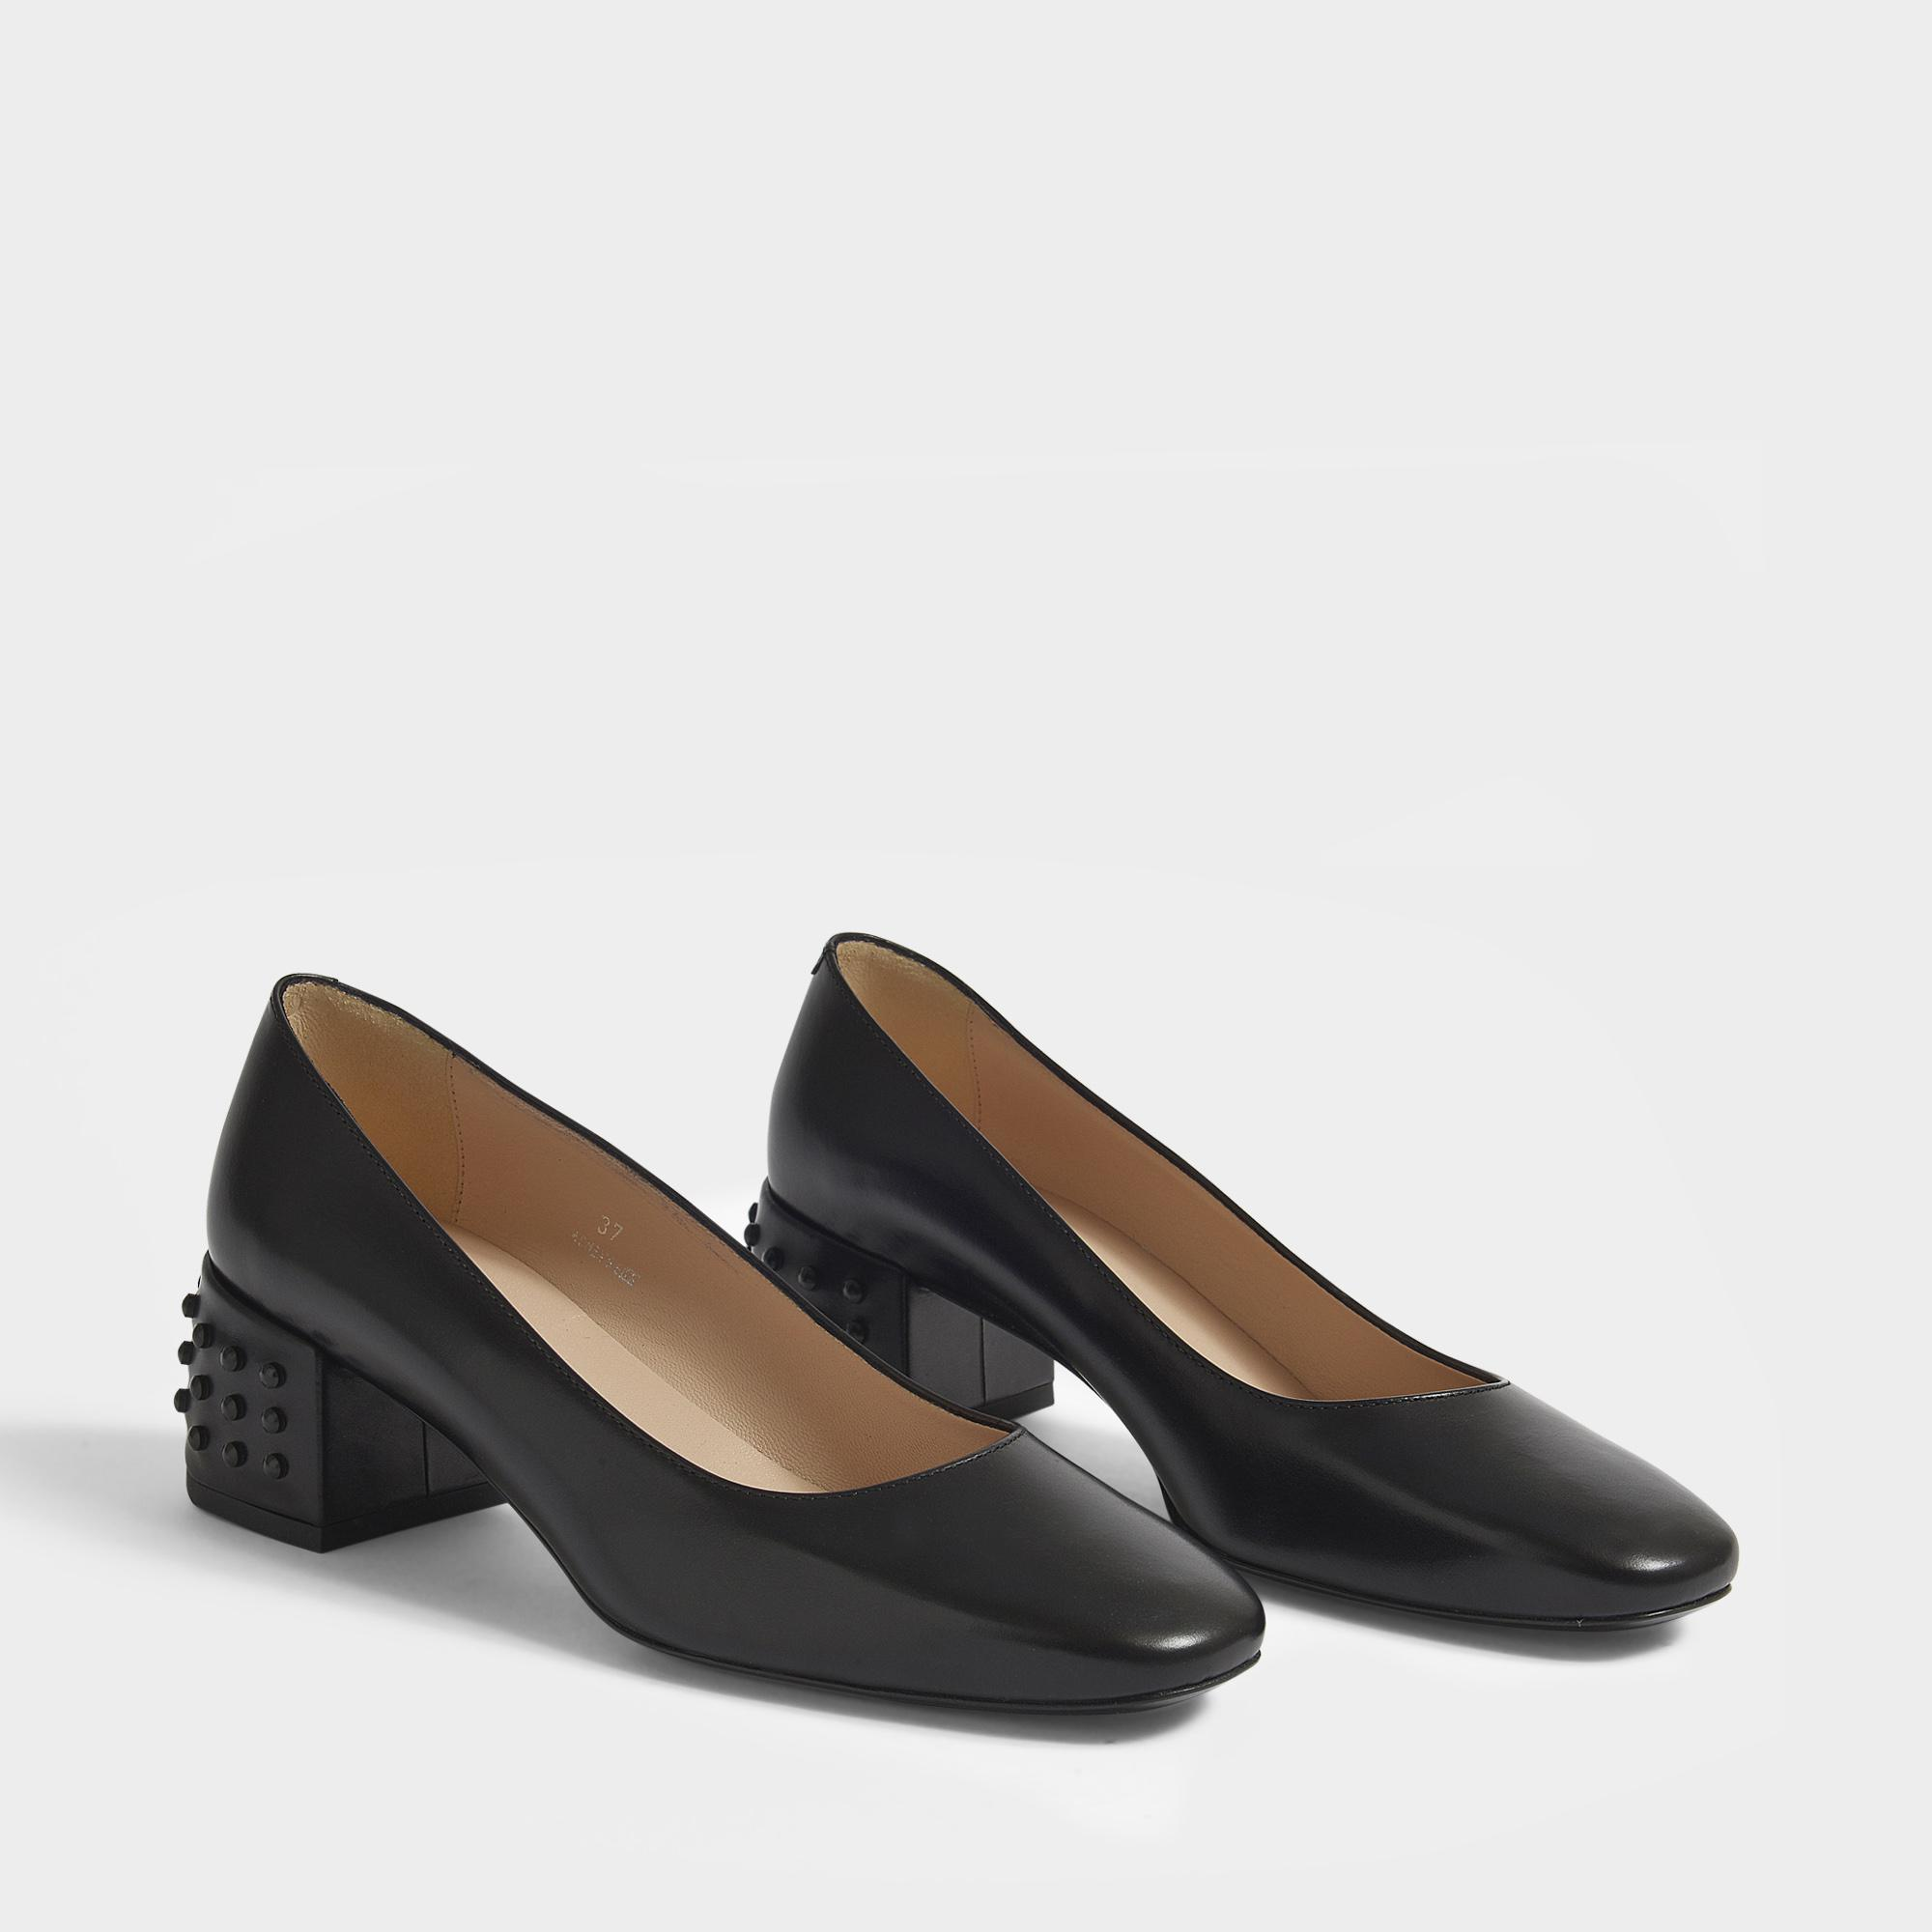 Gommino Heeled Pumps in Black Calfskin and Rubber Tod's t2goAxy6e